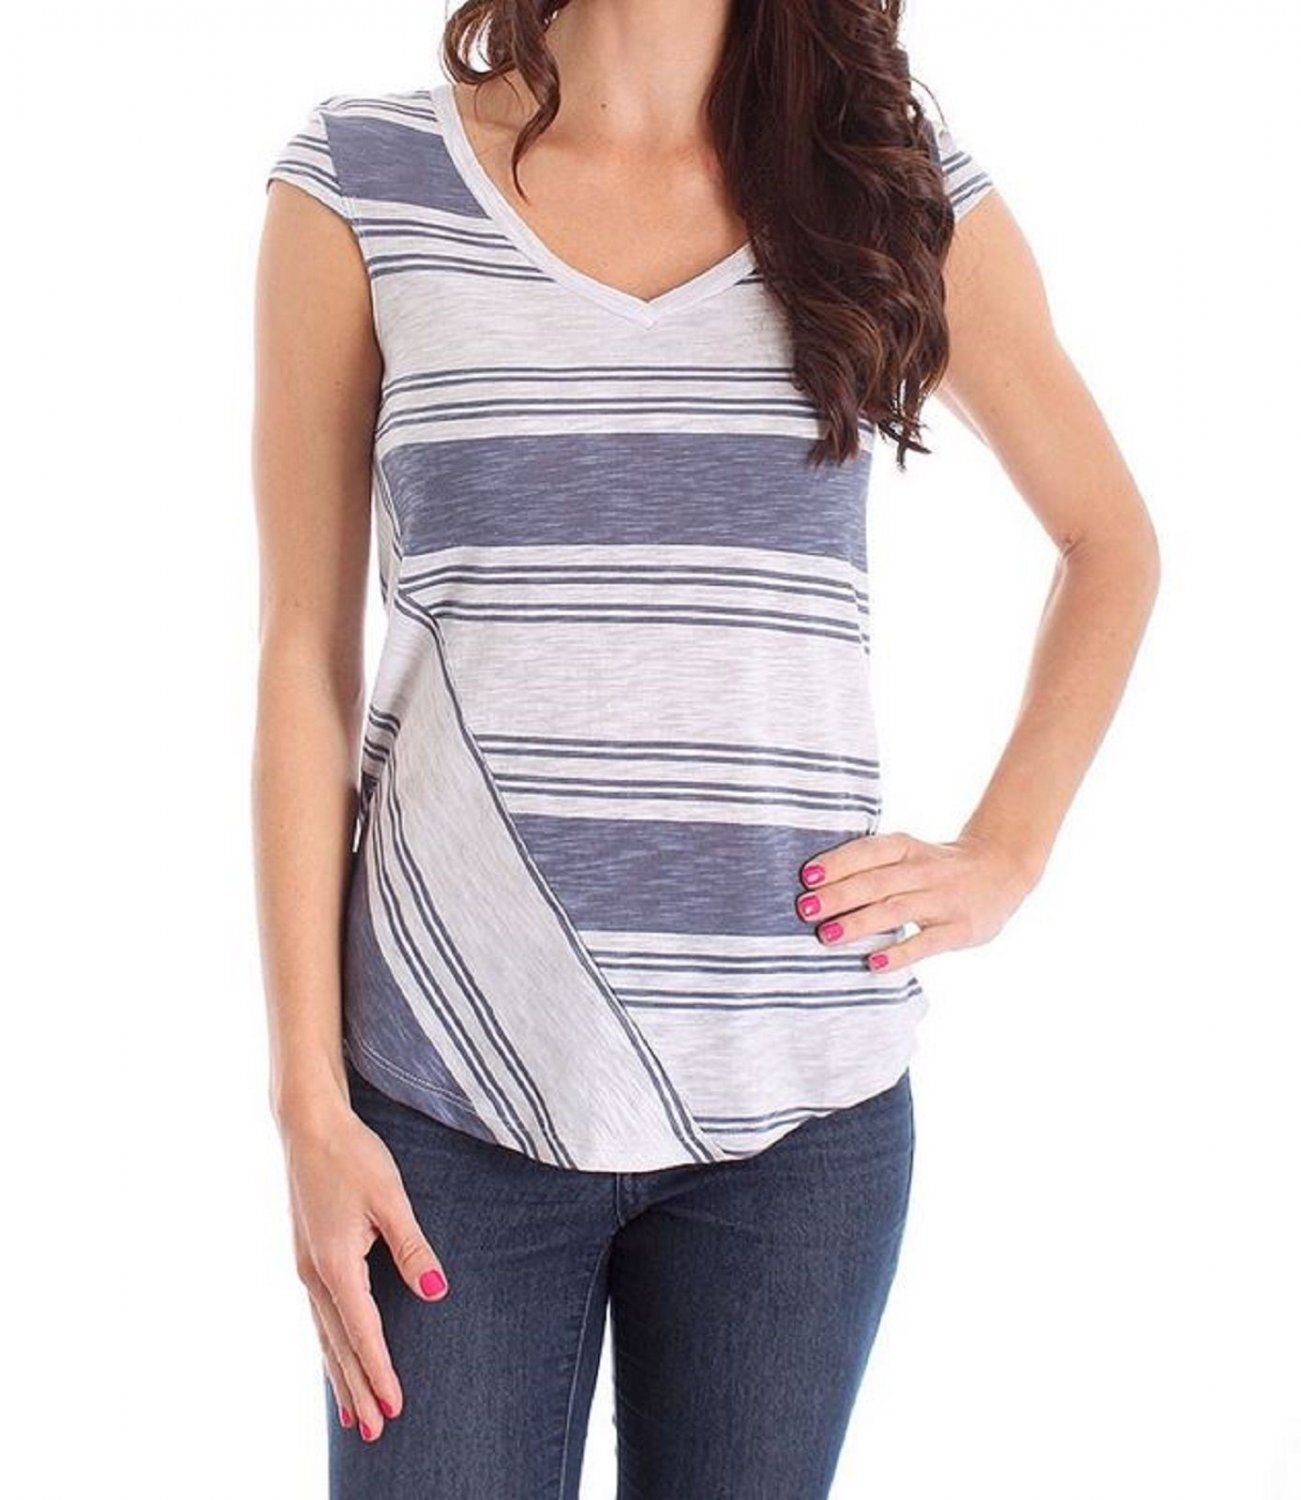 Derek Heart Juniors S Gray Stripe V-neck Tee Shirt Small New